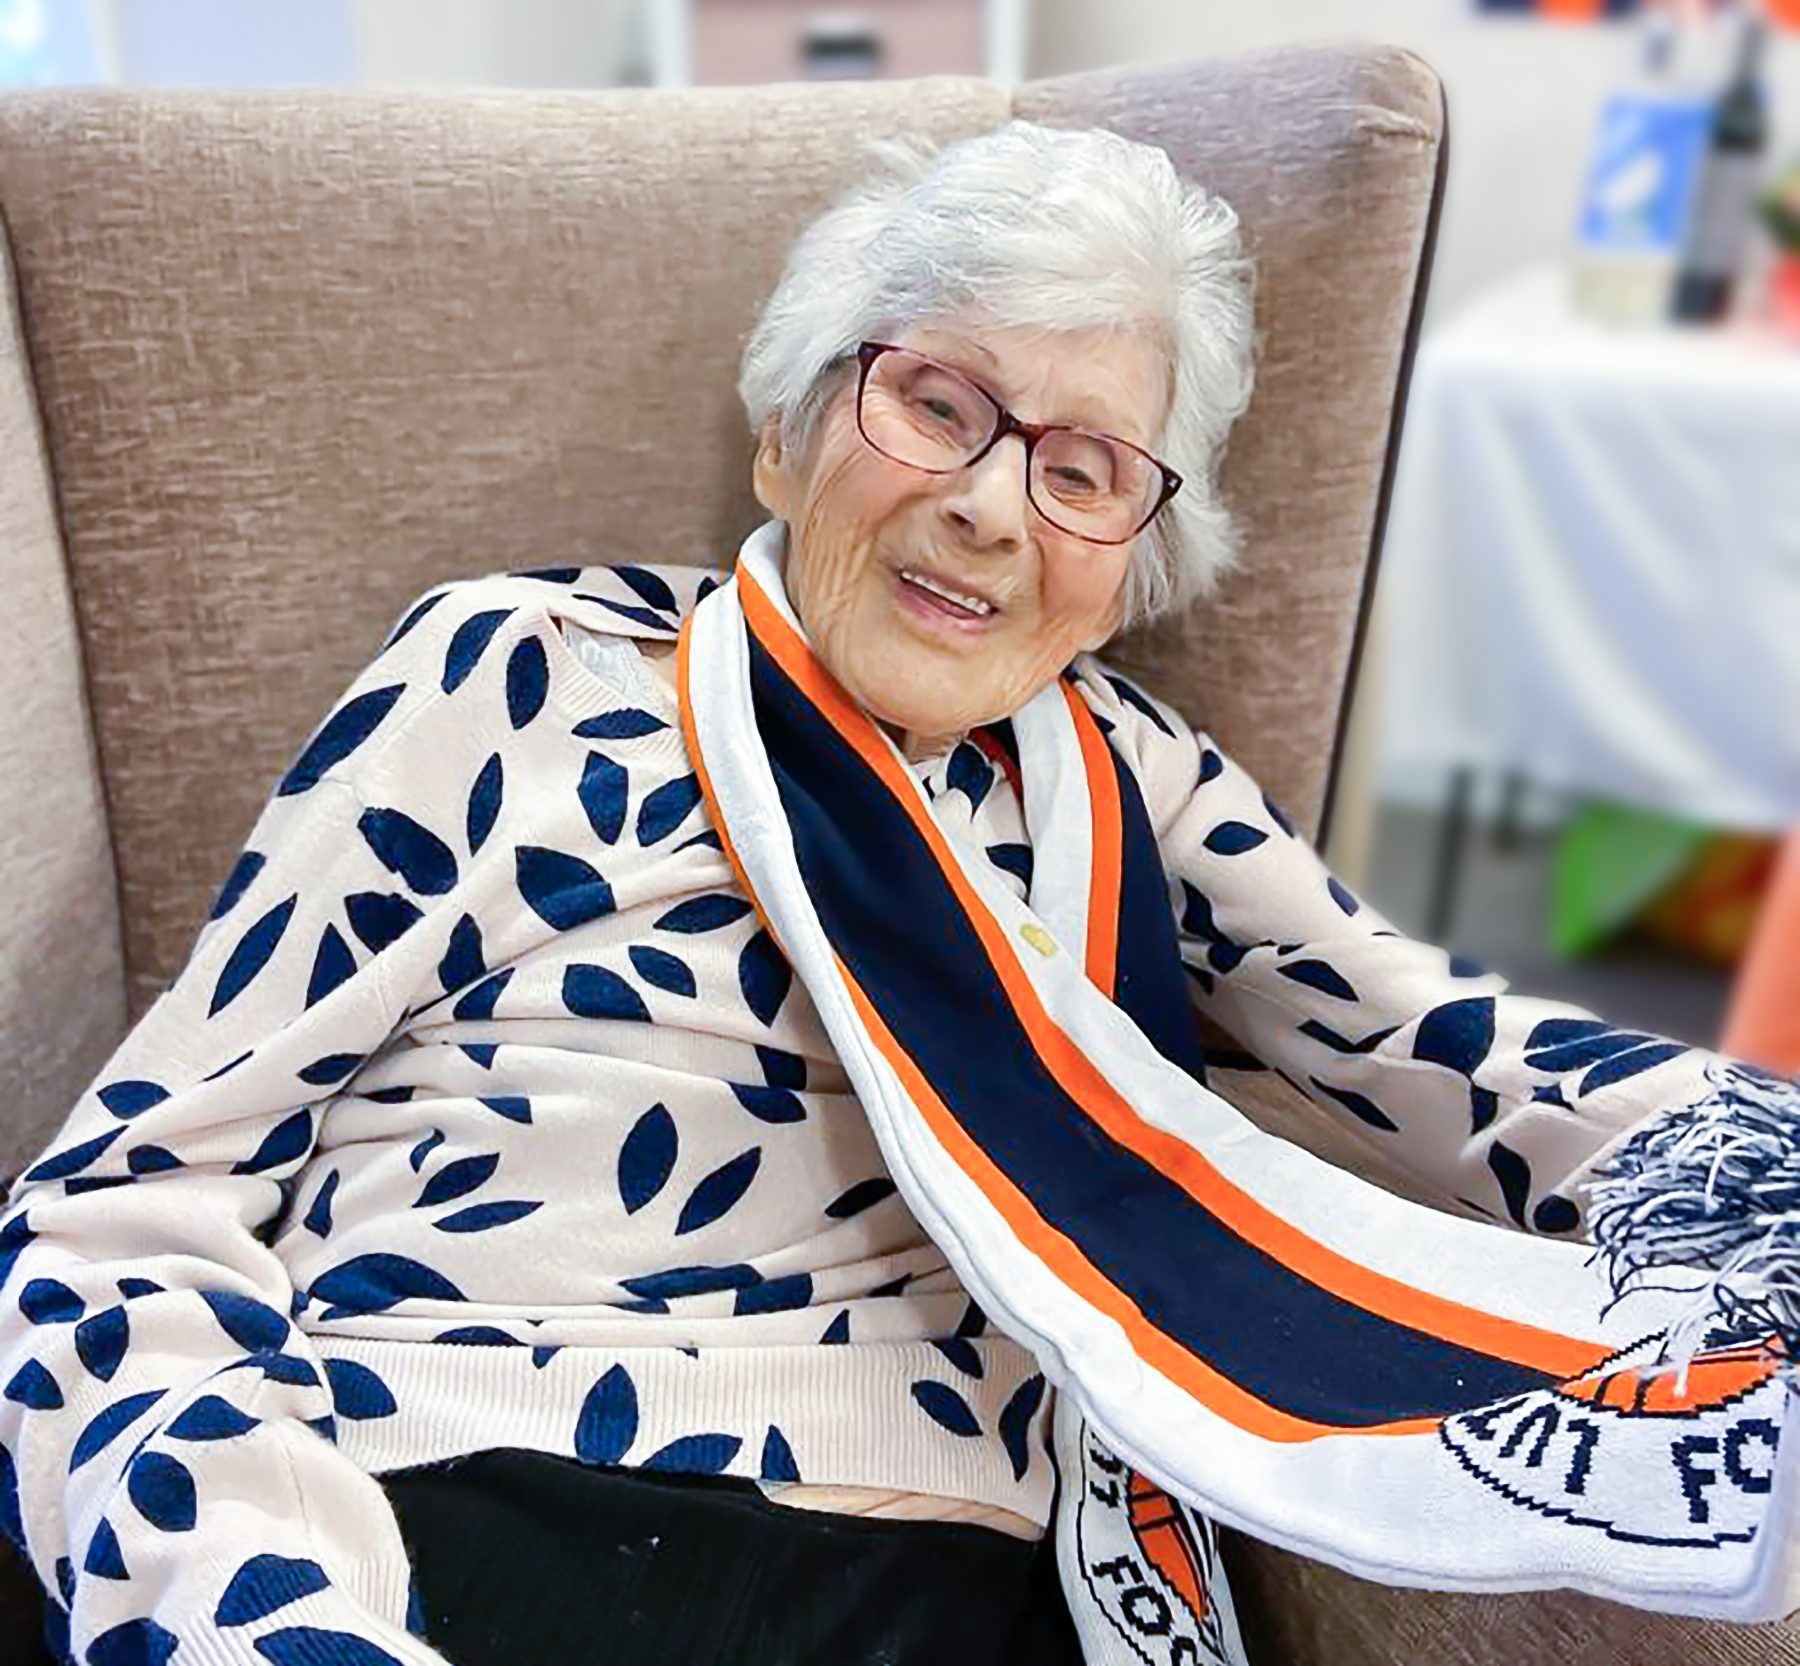 Little Bramingham Farm care home resident smiling and wearing her Hatter's scarf